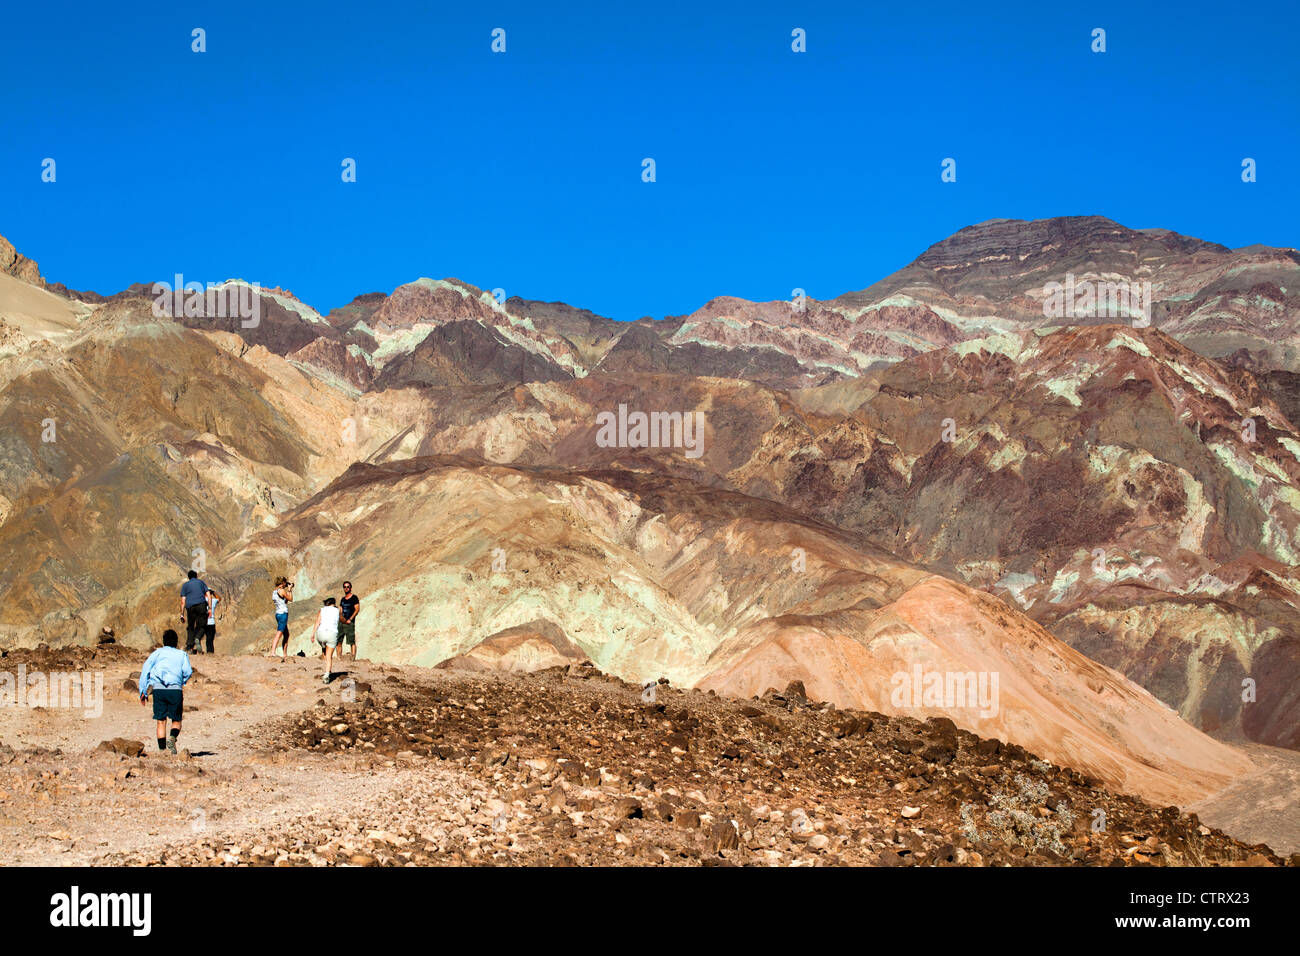 Palette d'artistes, la Death Valley, Californie, USA, Photo Stock